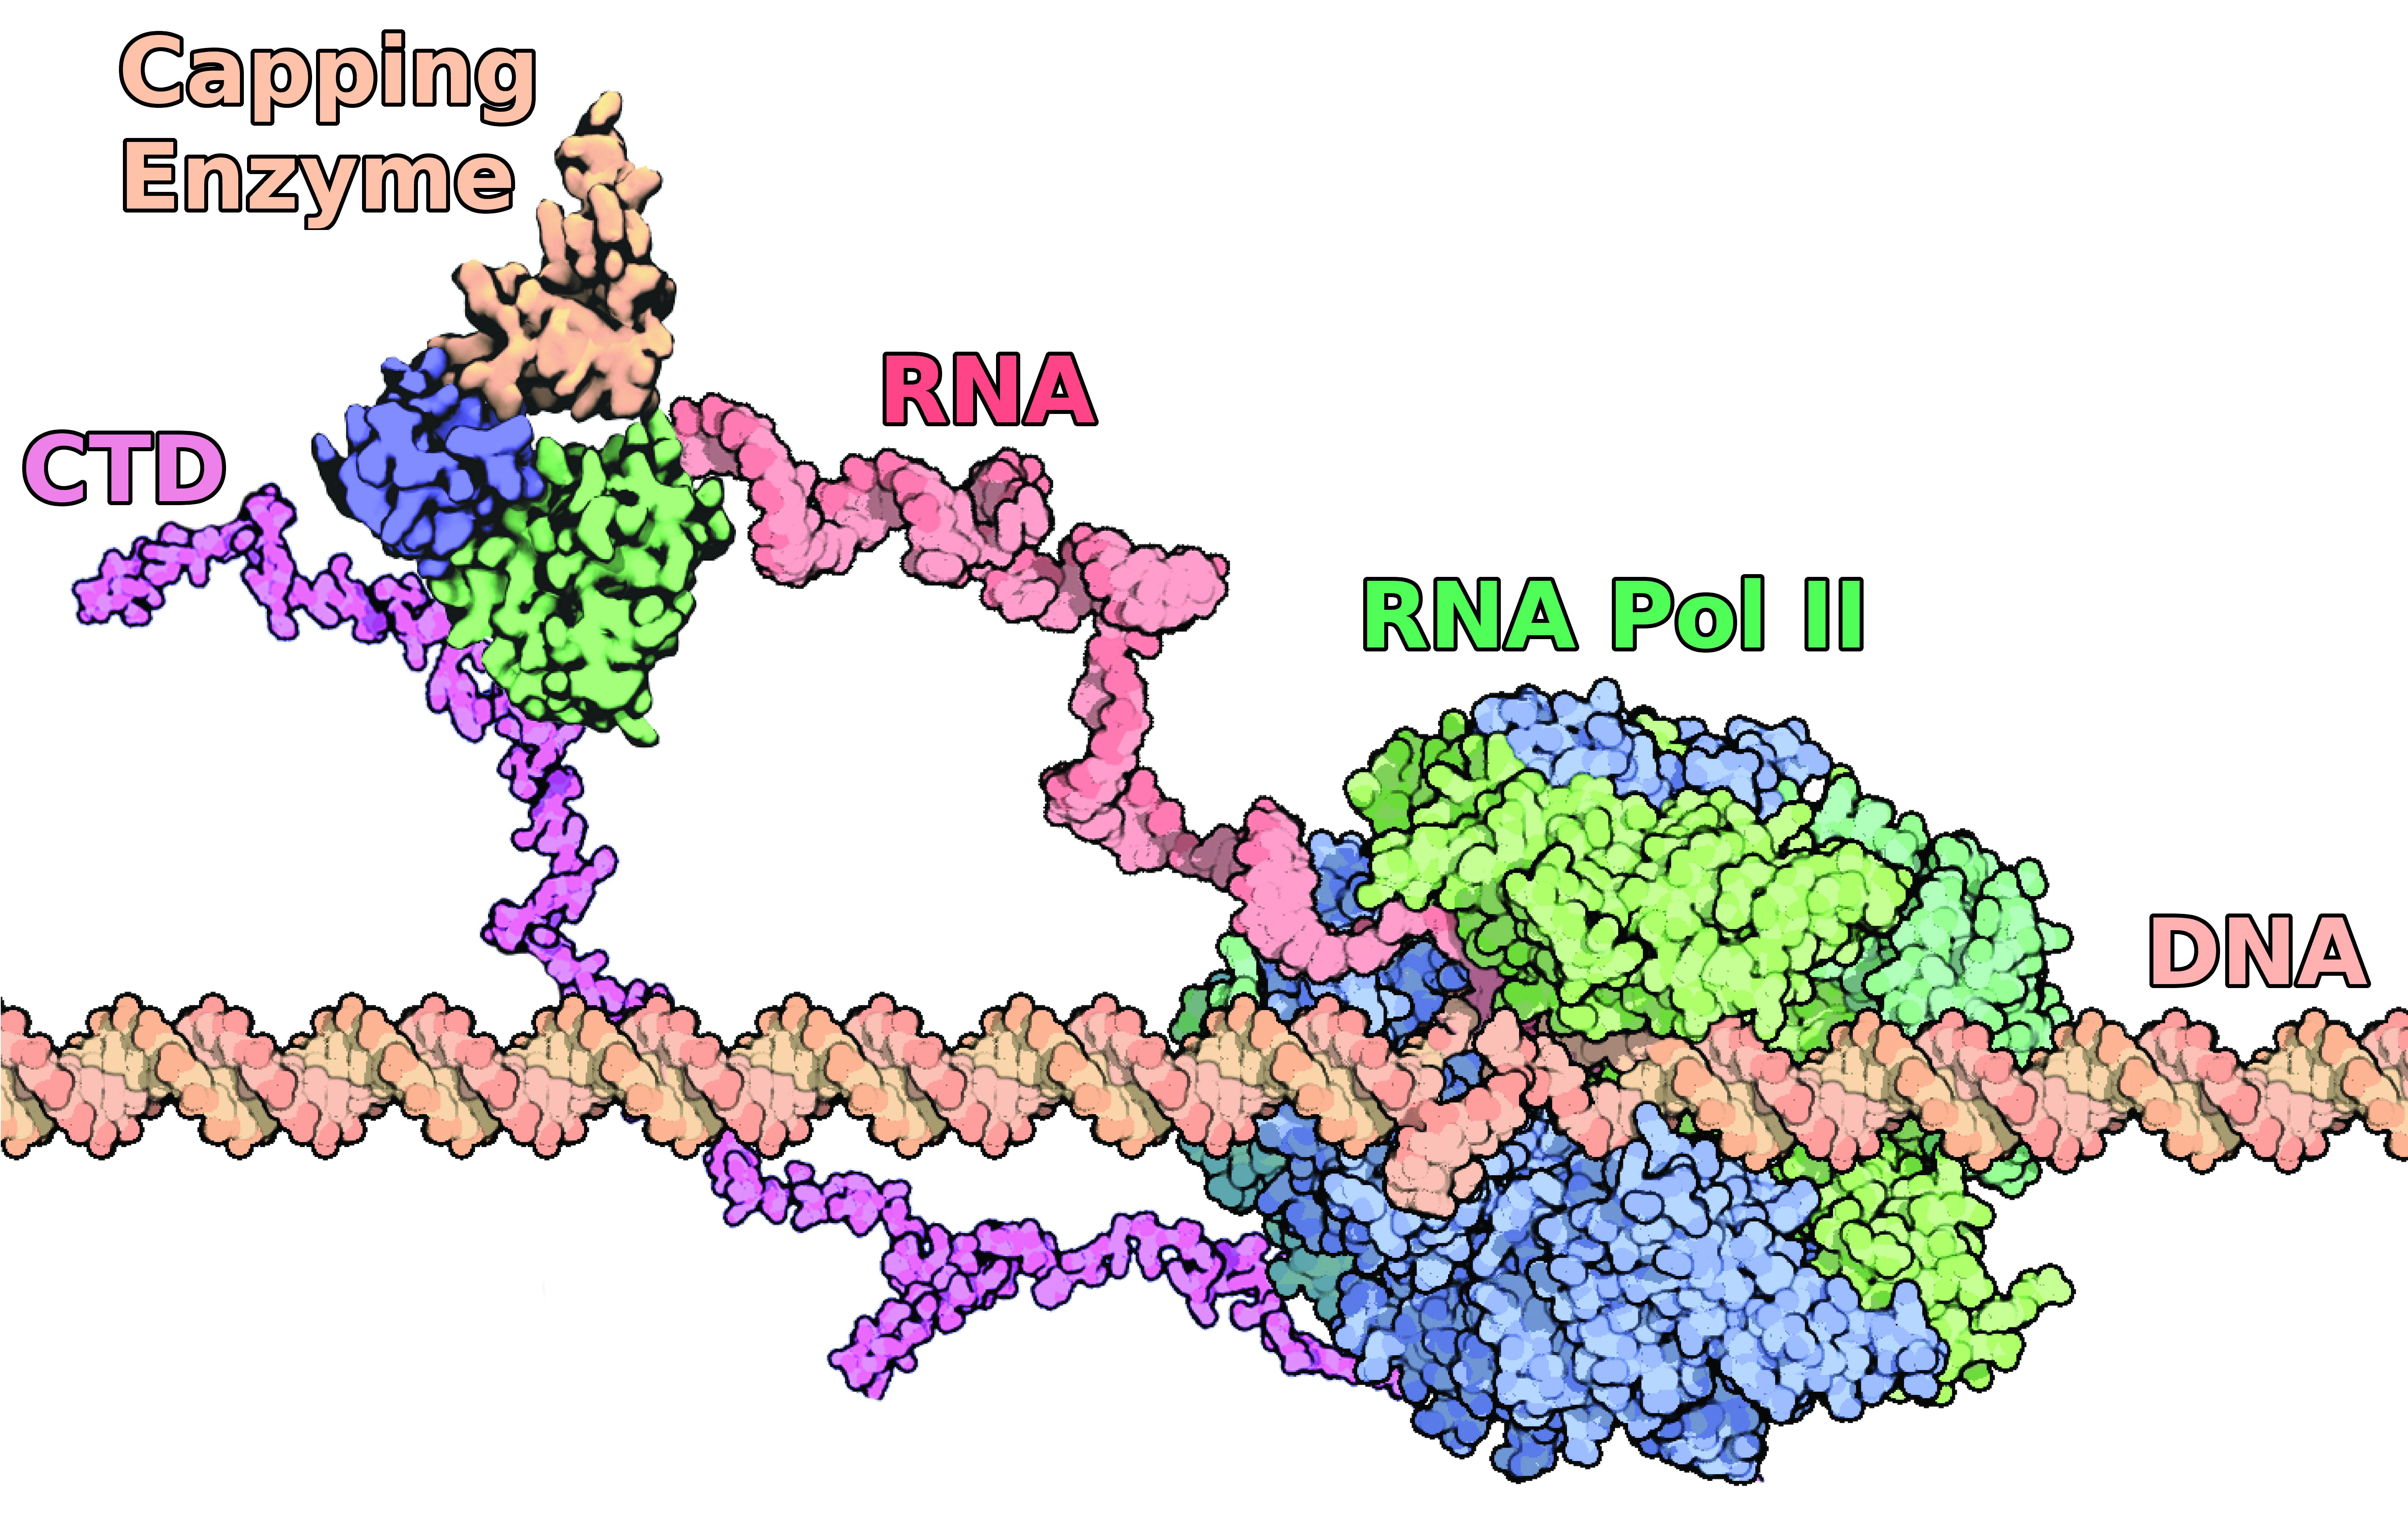 The extensive interaction between the mRNA Capping Enzyme and the CTD of RNA Pol-II. Research into this interaction shows that it is essential for the allosteric activation of the Capping Enzyme and provides further insights into the mechanisms of gene re